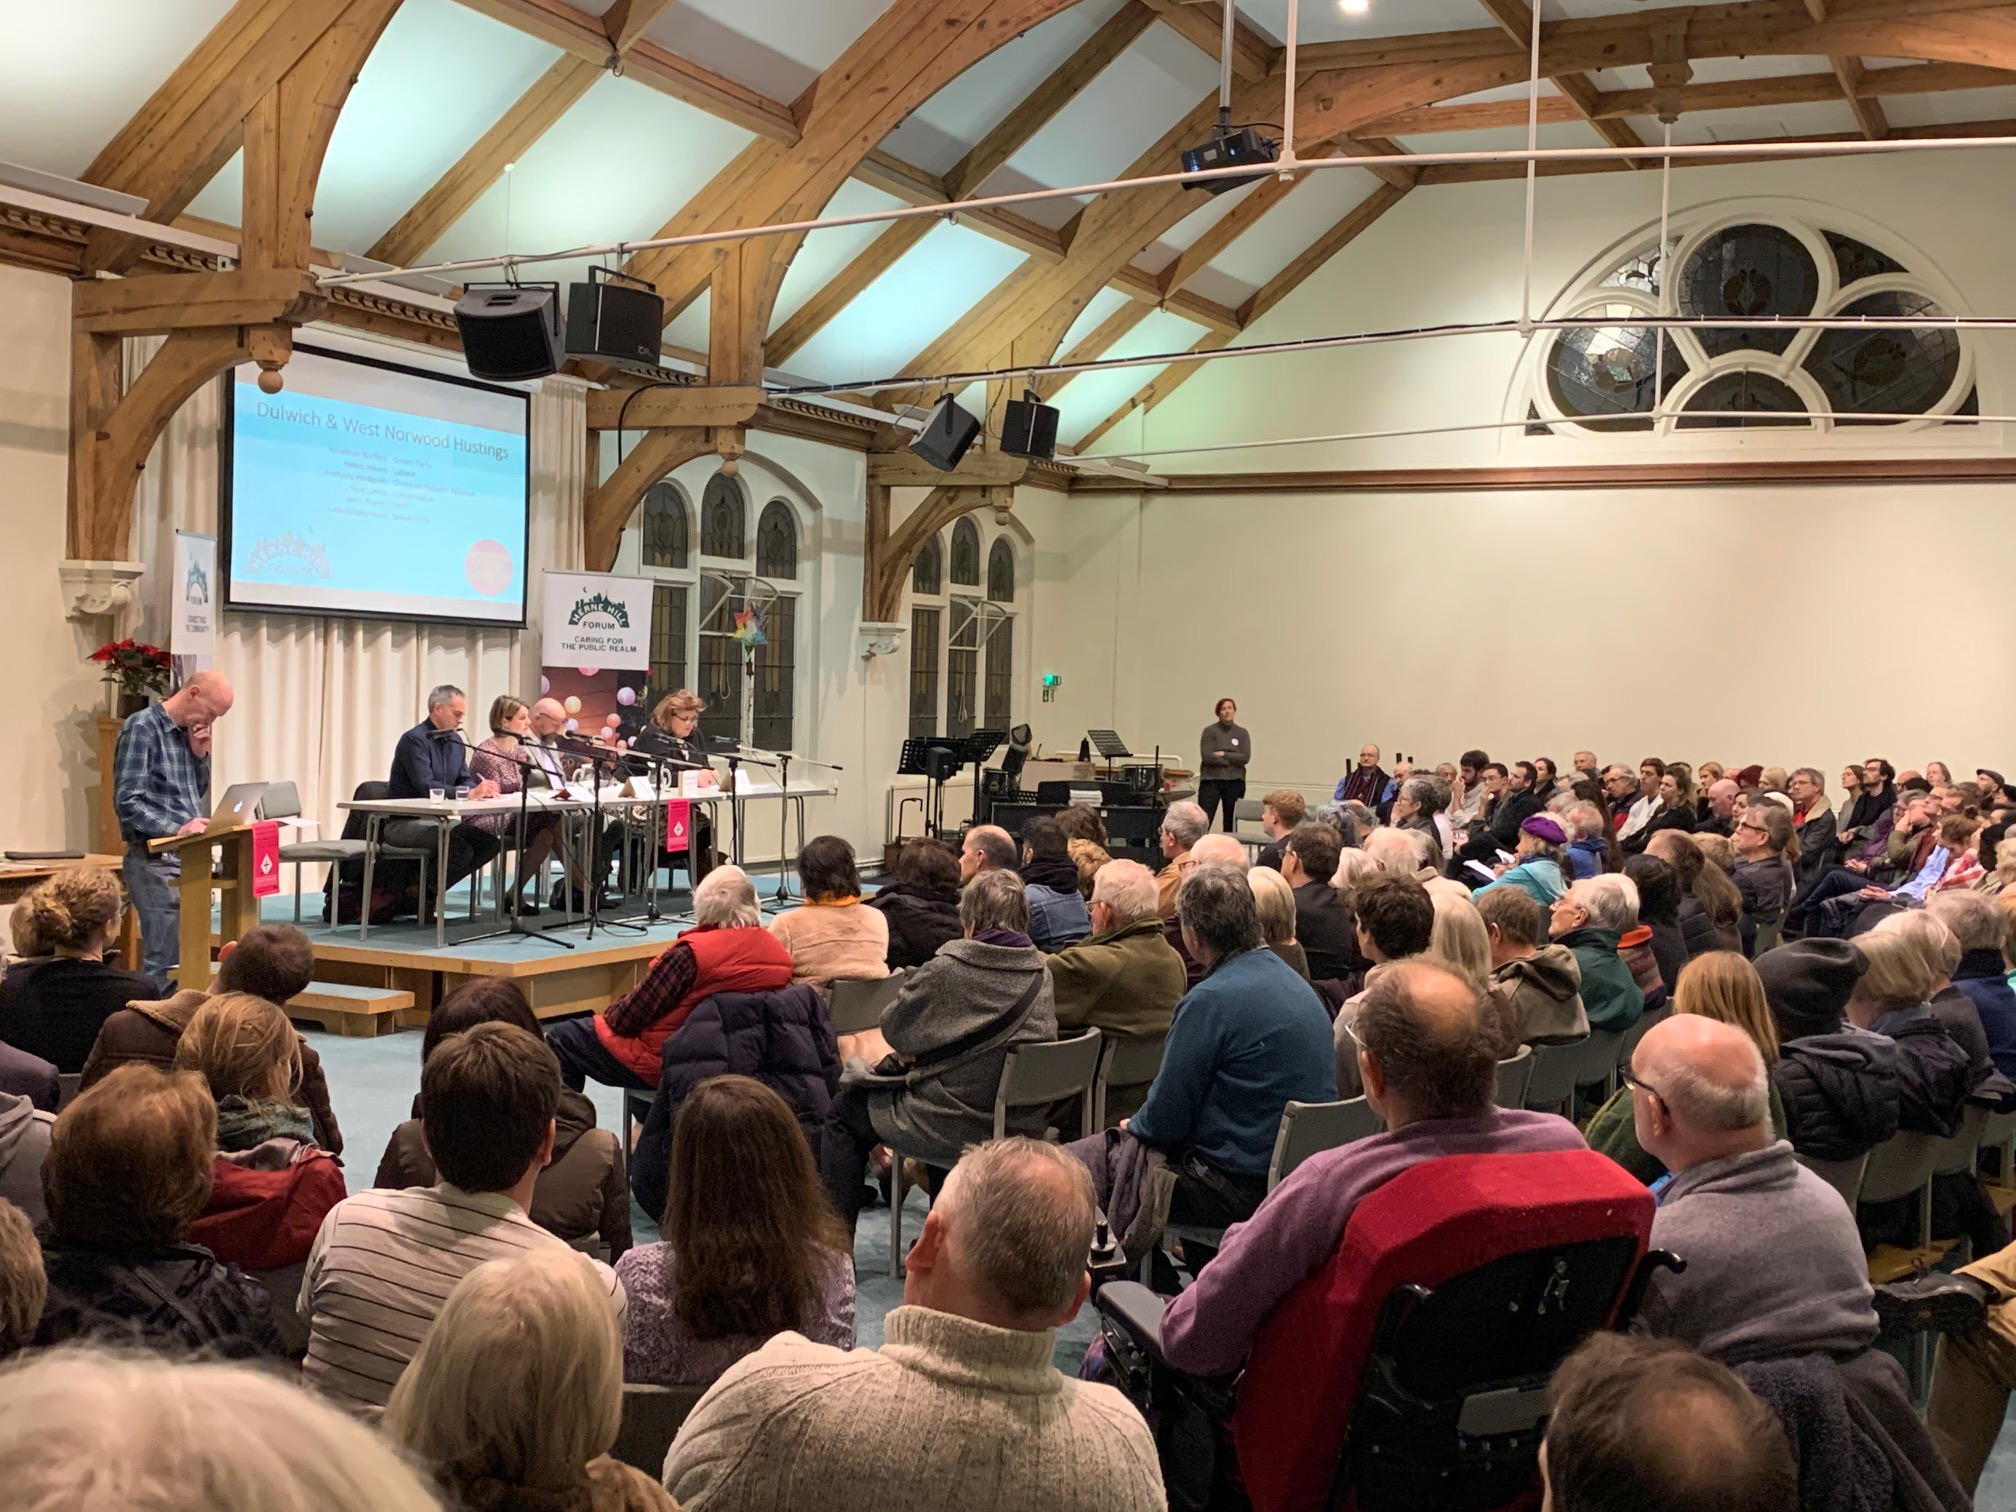 Herne Hill forum hustings 2019